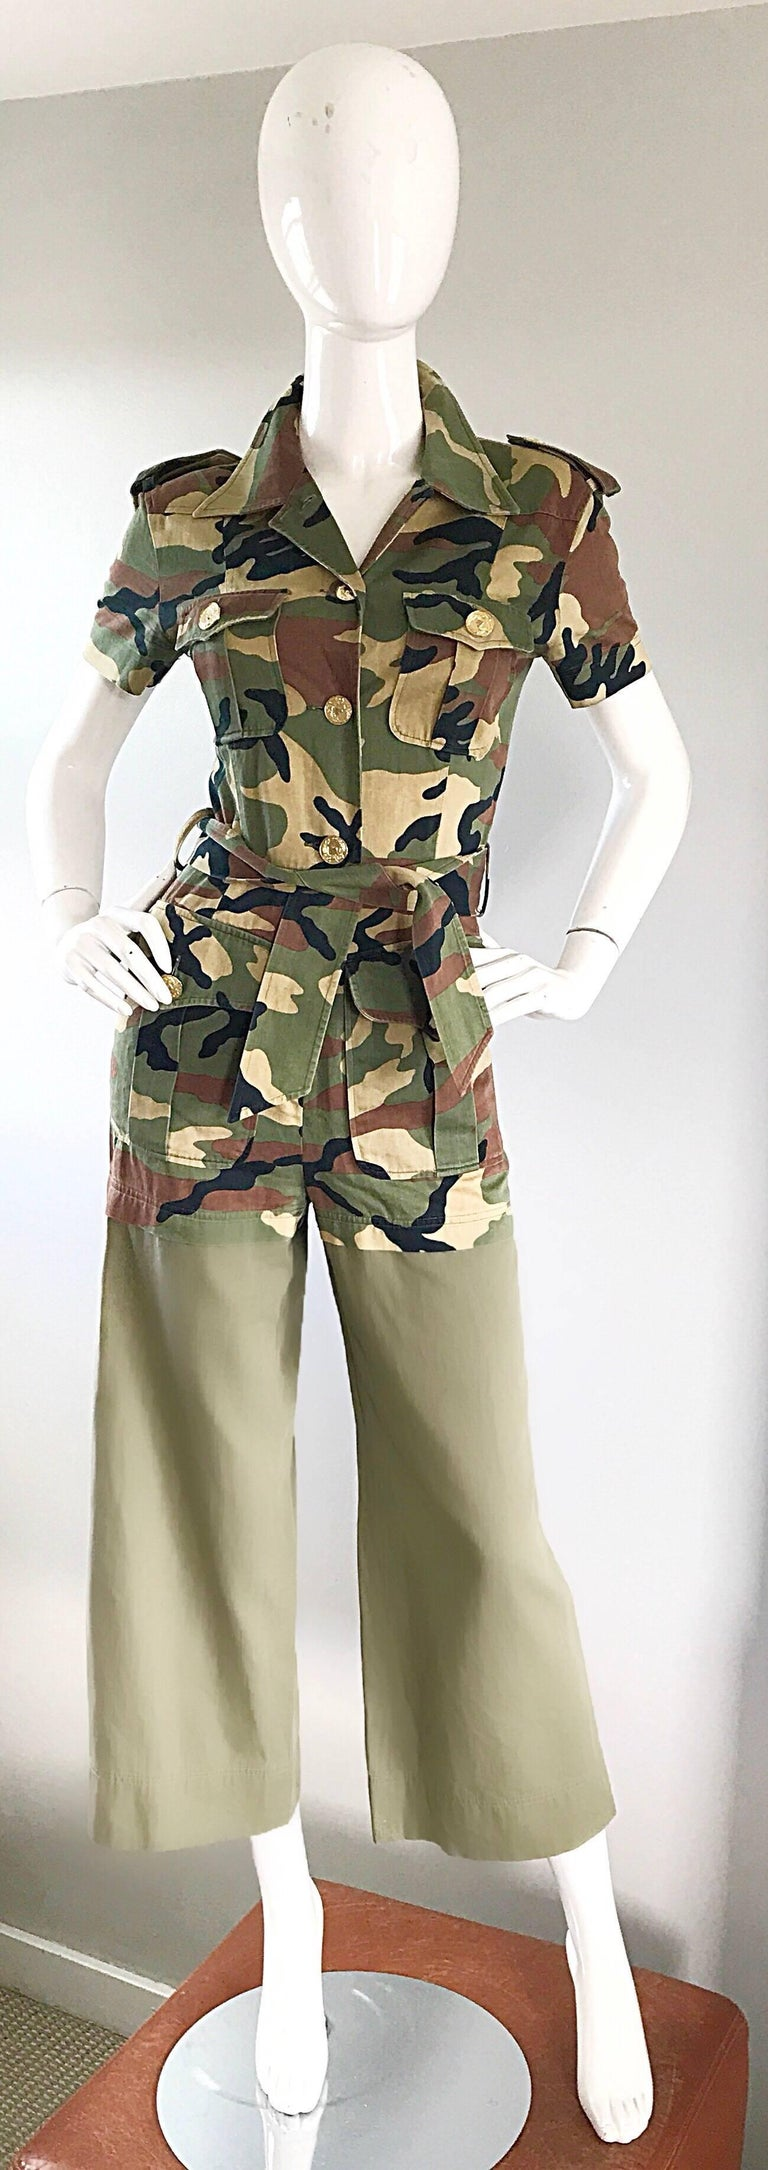 Rare vintage MOSCHINO Pret-a-Porter camouflage army green cropped jumpsuit! Features army green, brown, tan, and black camo print throughout. Gold buttons up the bodice, with a zipper fly. Two cargo pockets at each breast, and two cargo pockets at